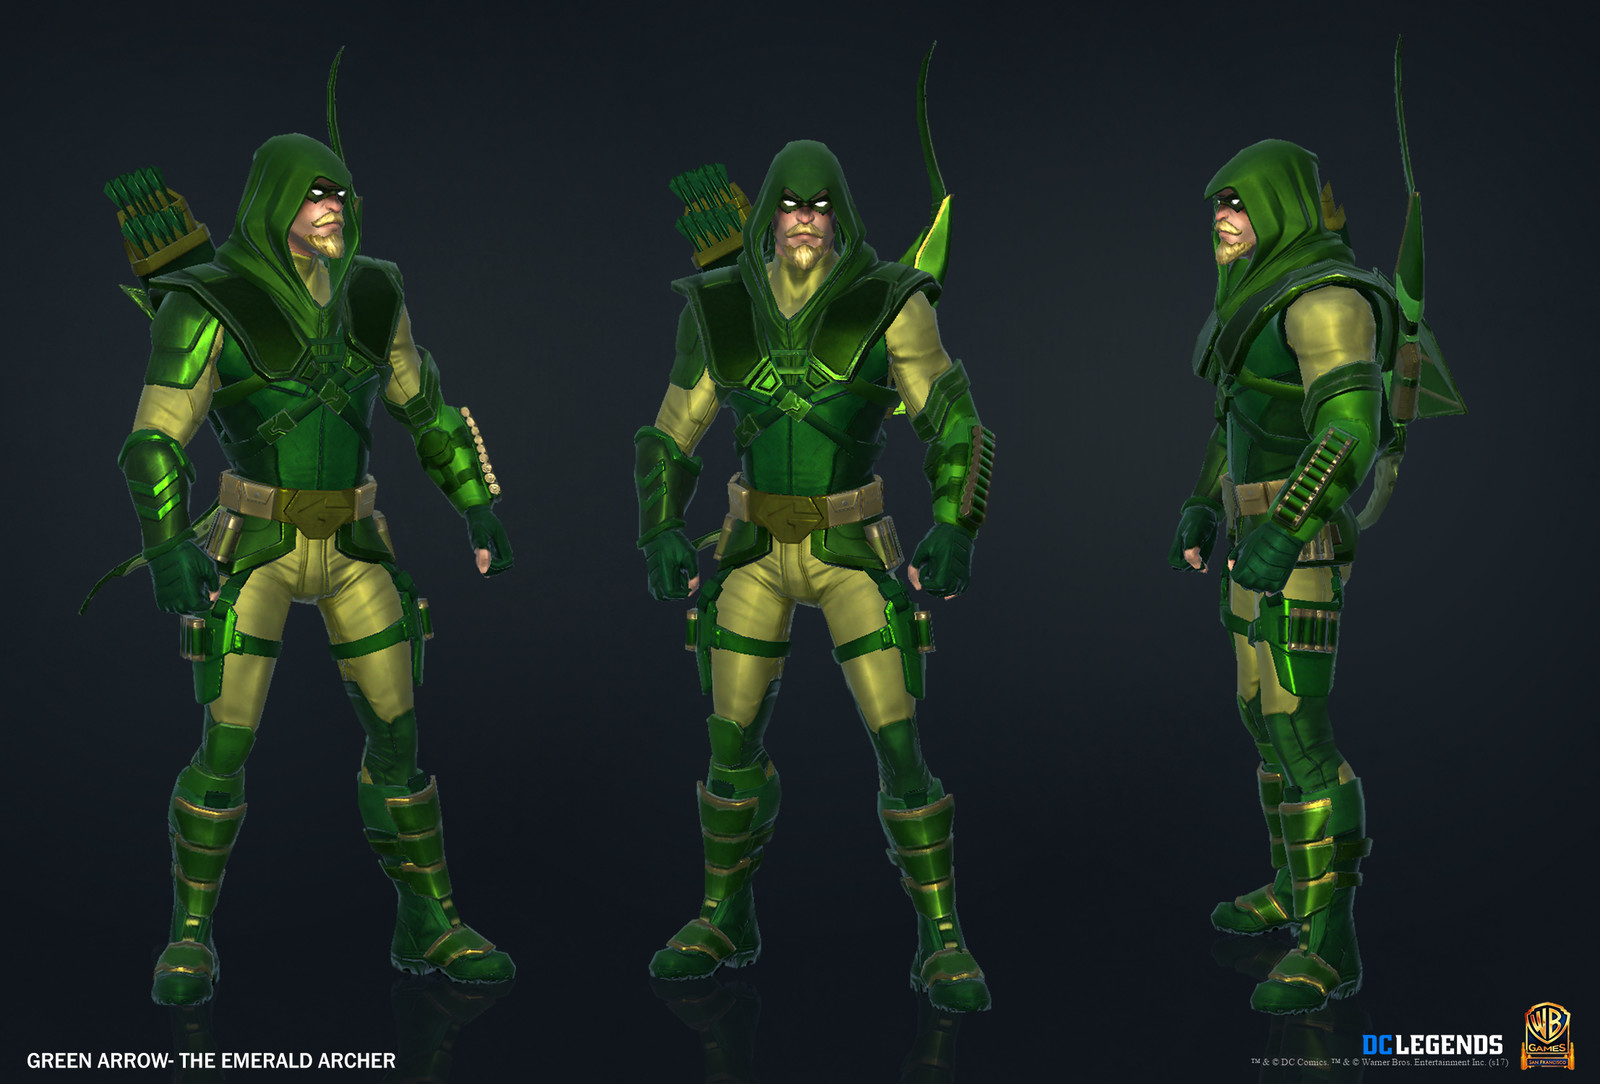 Green Arrow Legendary. High Poly, Low Poly and Textures/Material work done by me. Additional Texture/Material pass done by Josiah Martinez.